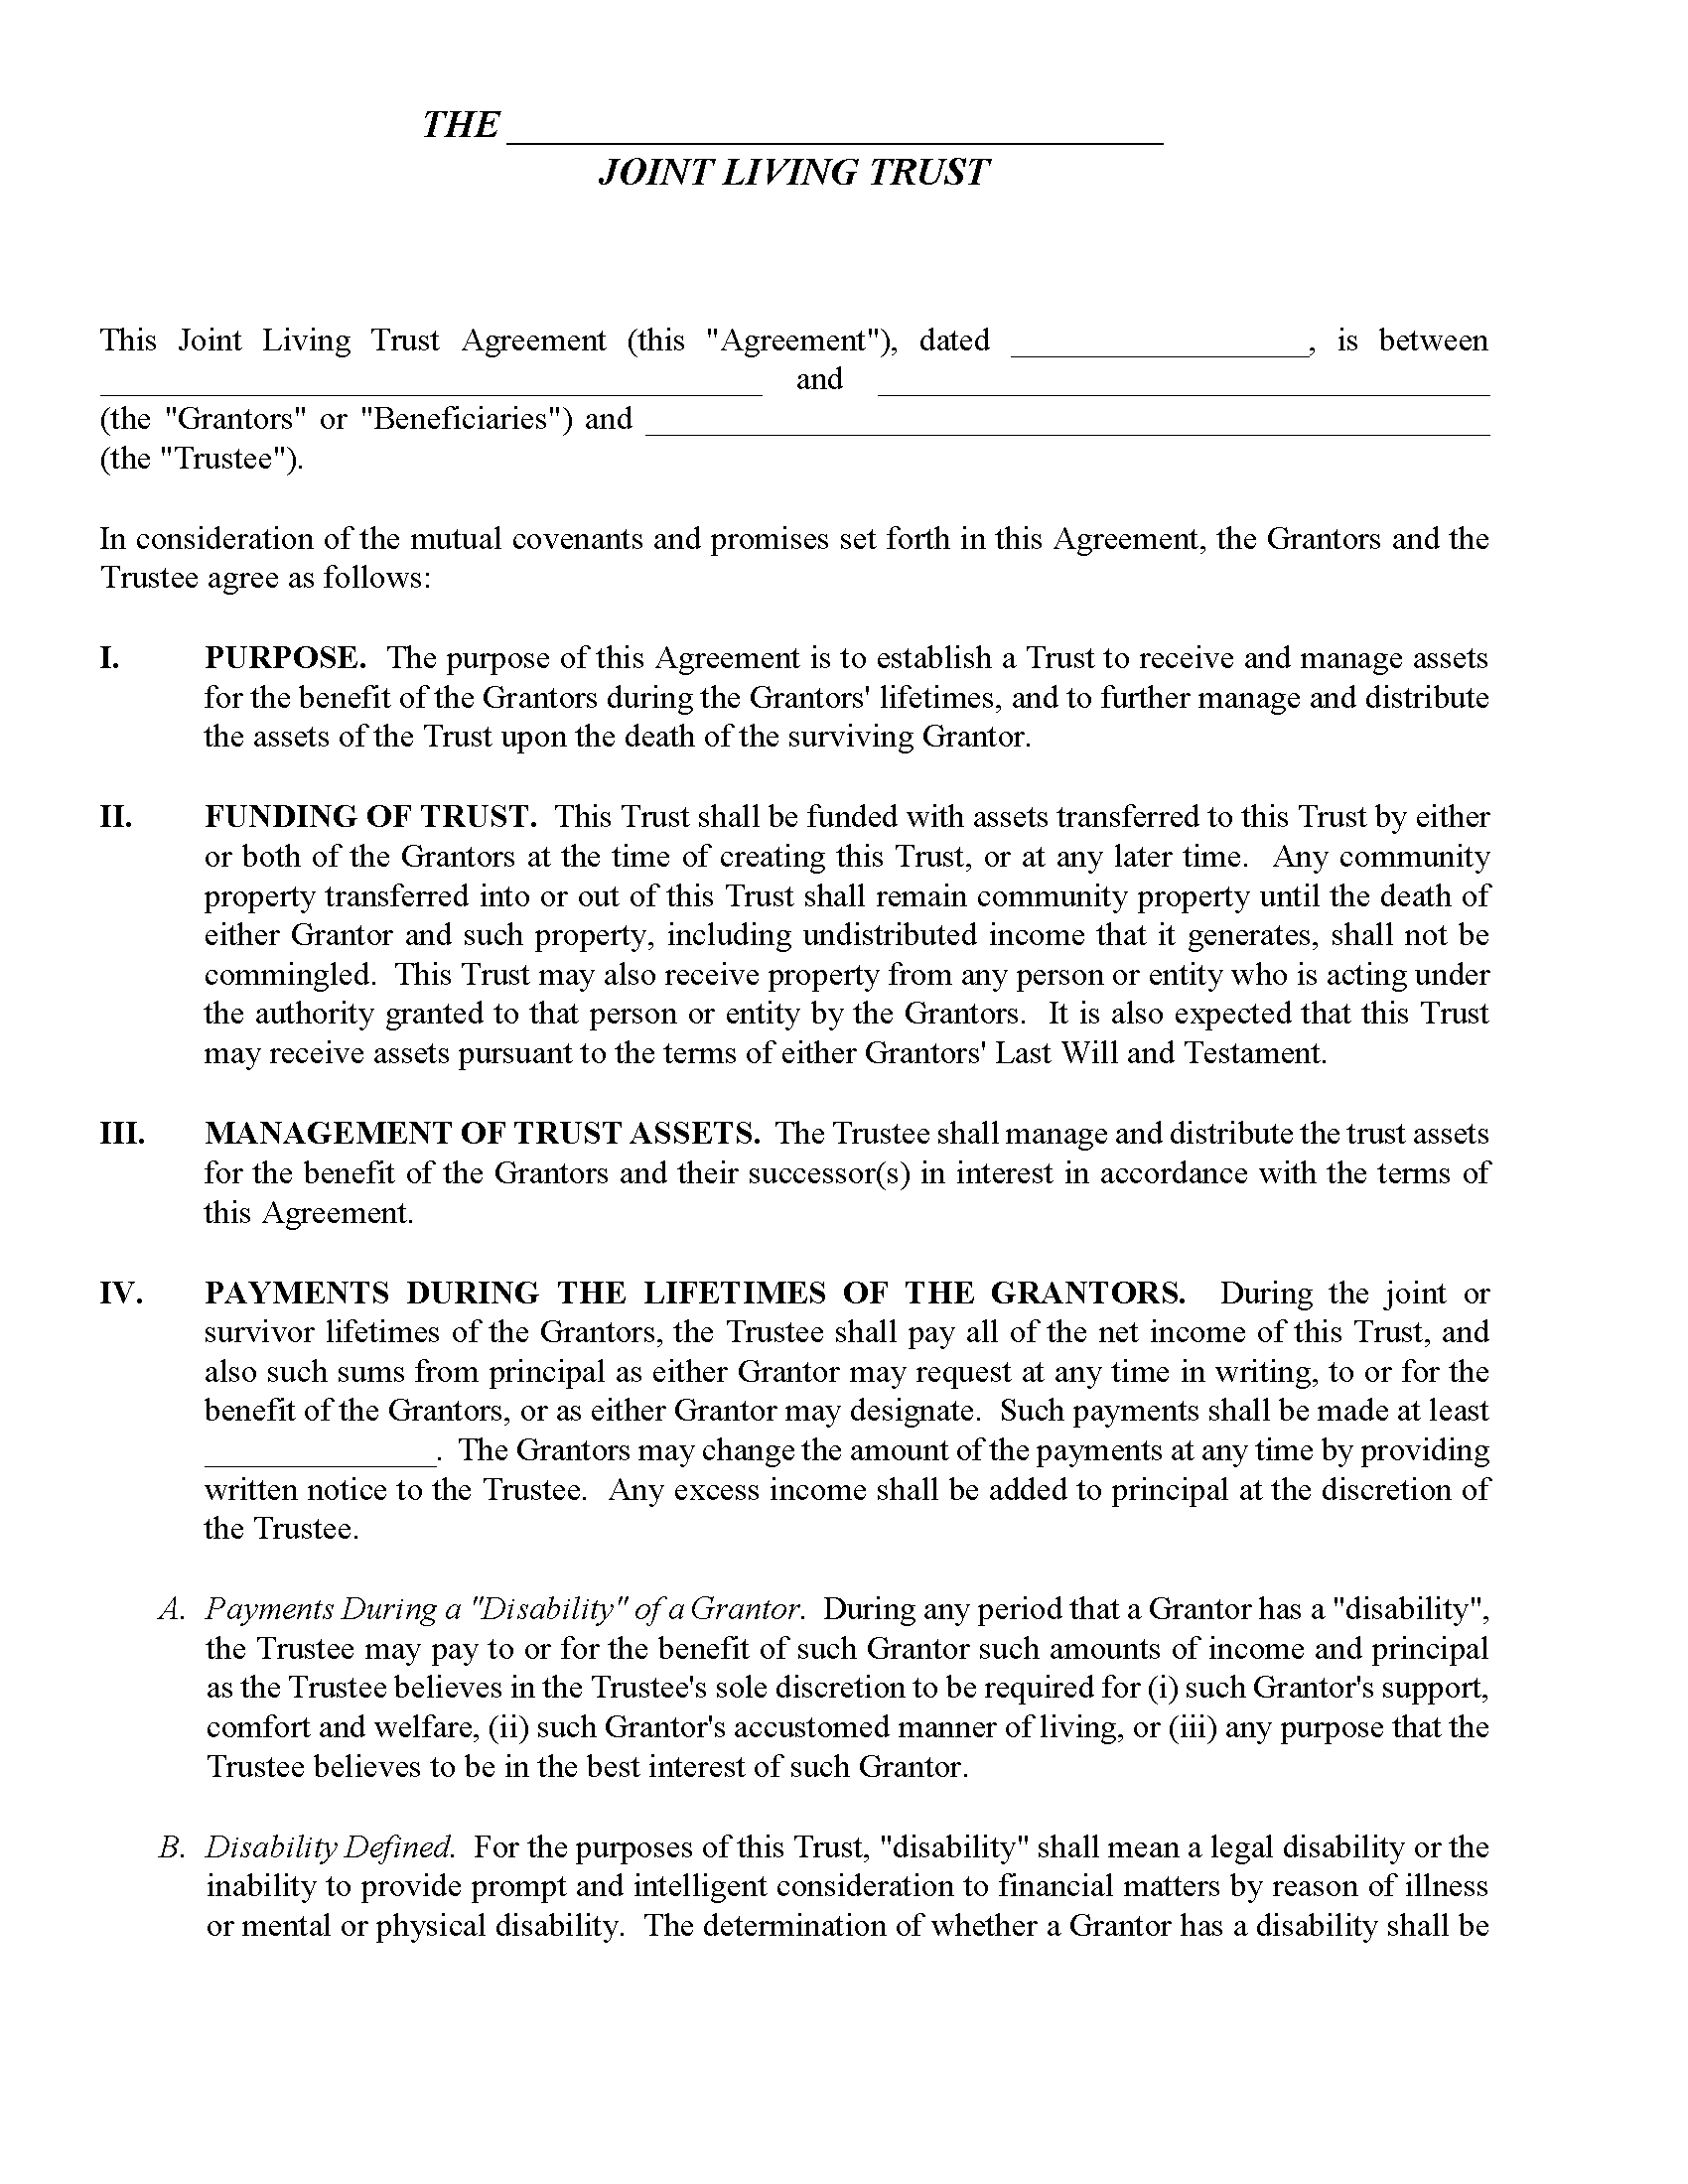 Oklahoma Joint Living Trust Form